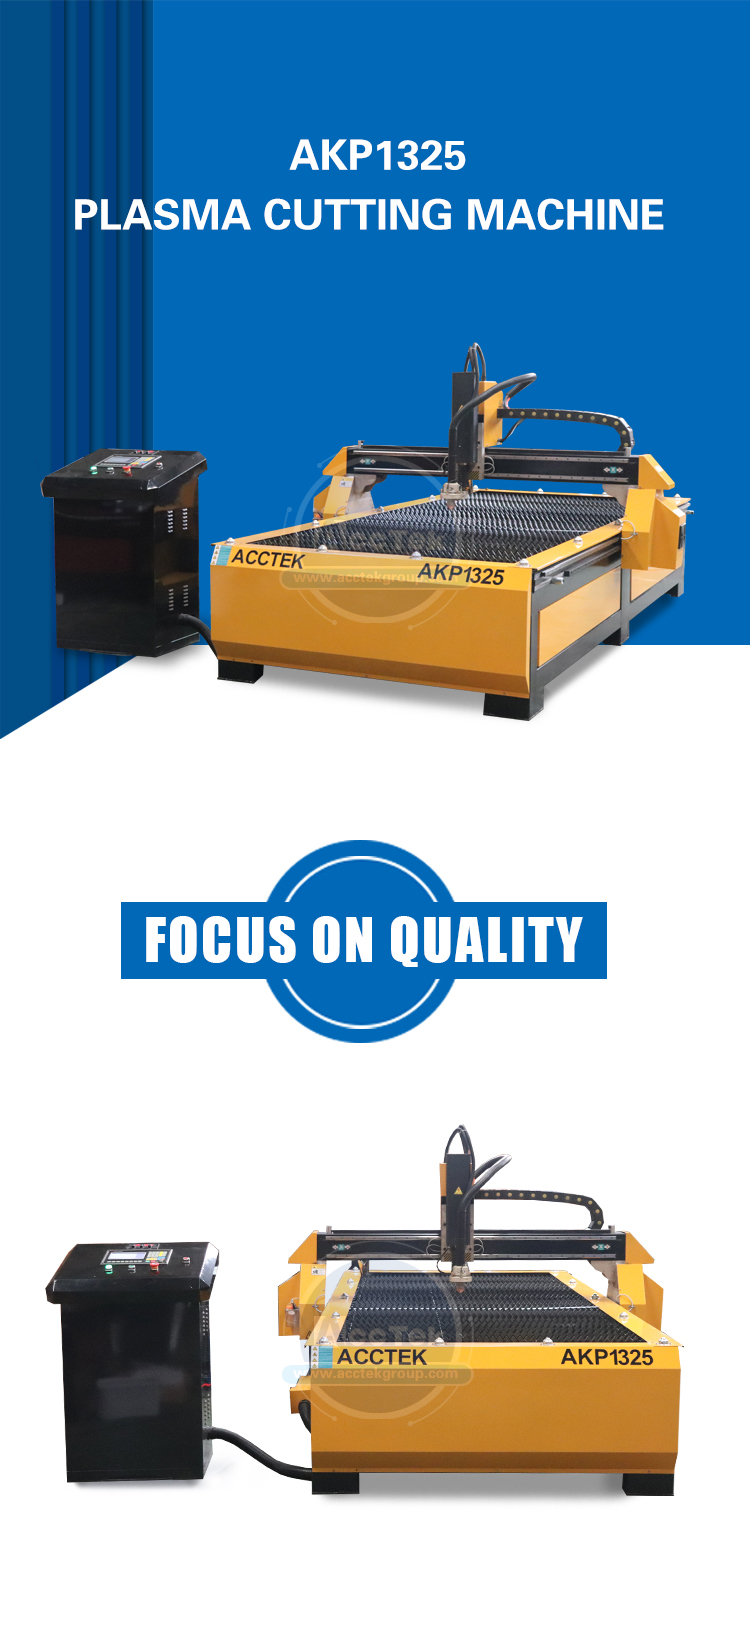 Hd6c4540f63624c039d50f46ce7624740F - equipment for business, small business equipment,аппарат плазменной резки,plasma cutting machine for metal cutting